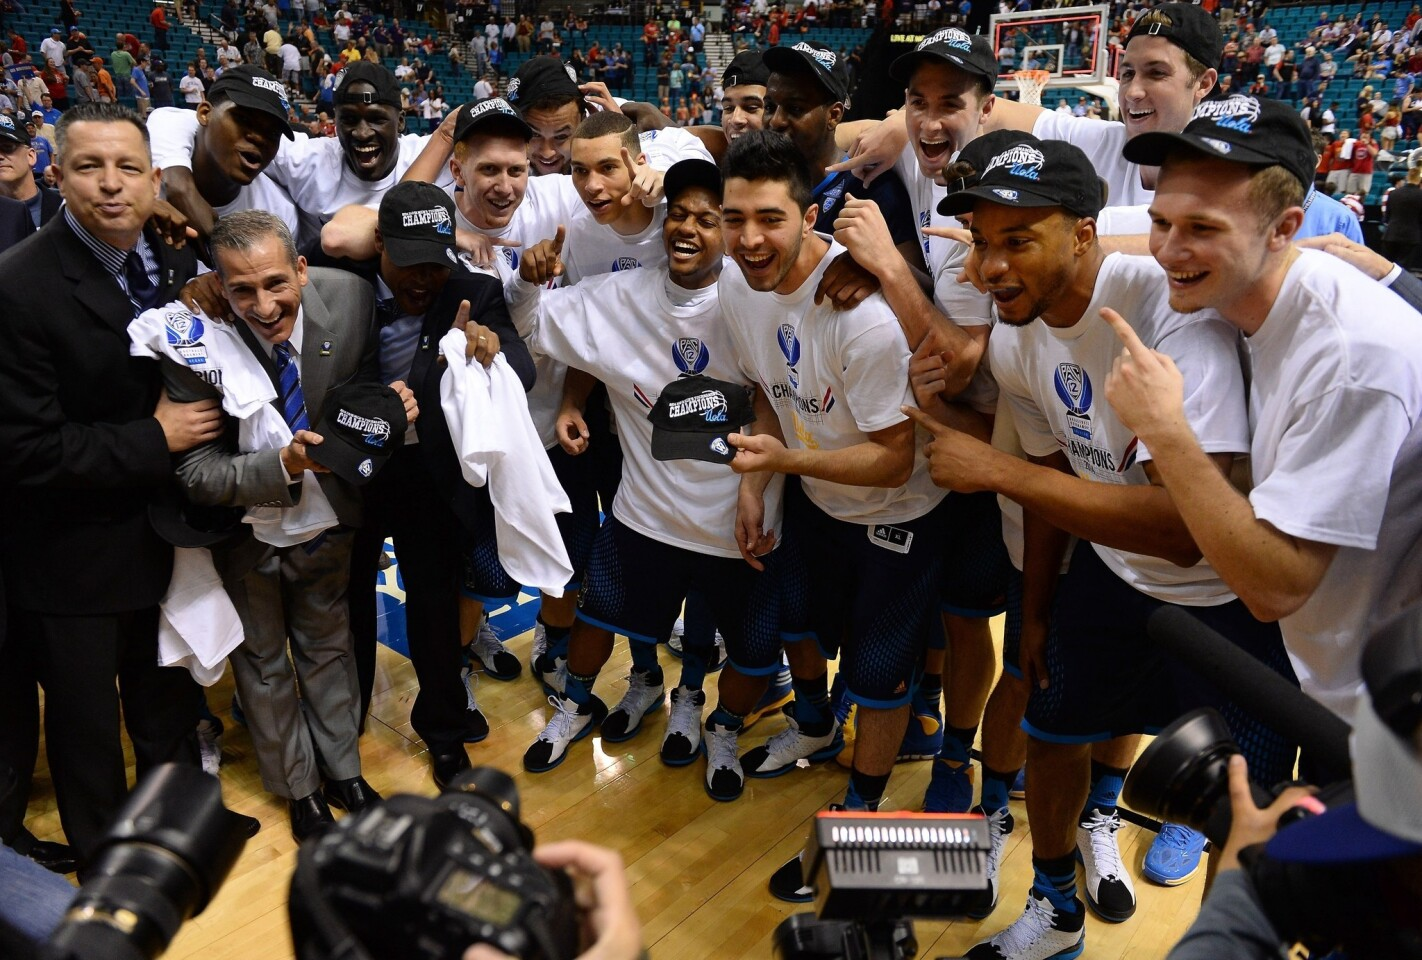 UCLA players celebrate their 75-71 upset win over Arizona in the Pac-12 tournament title game at the MGM Garden Arena in Las Vegas on Saturday.